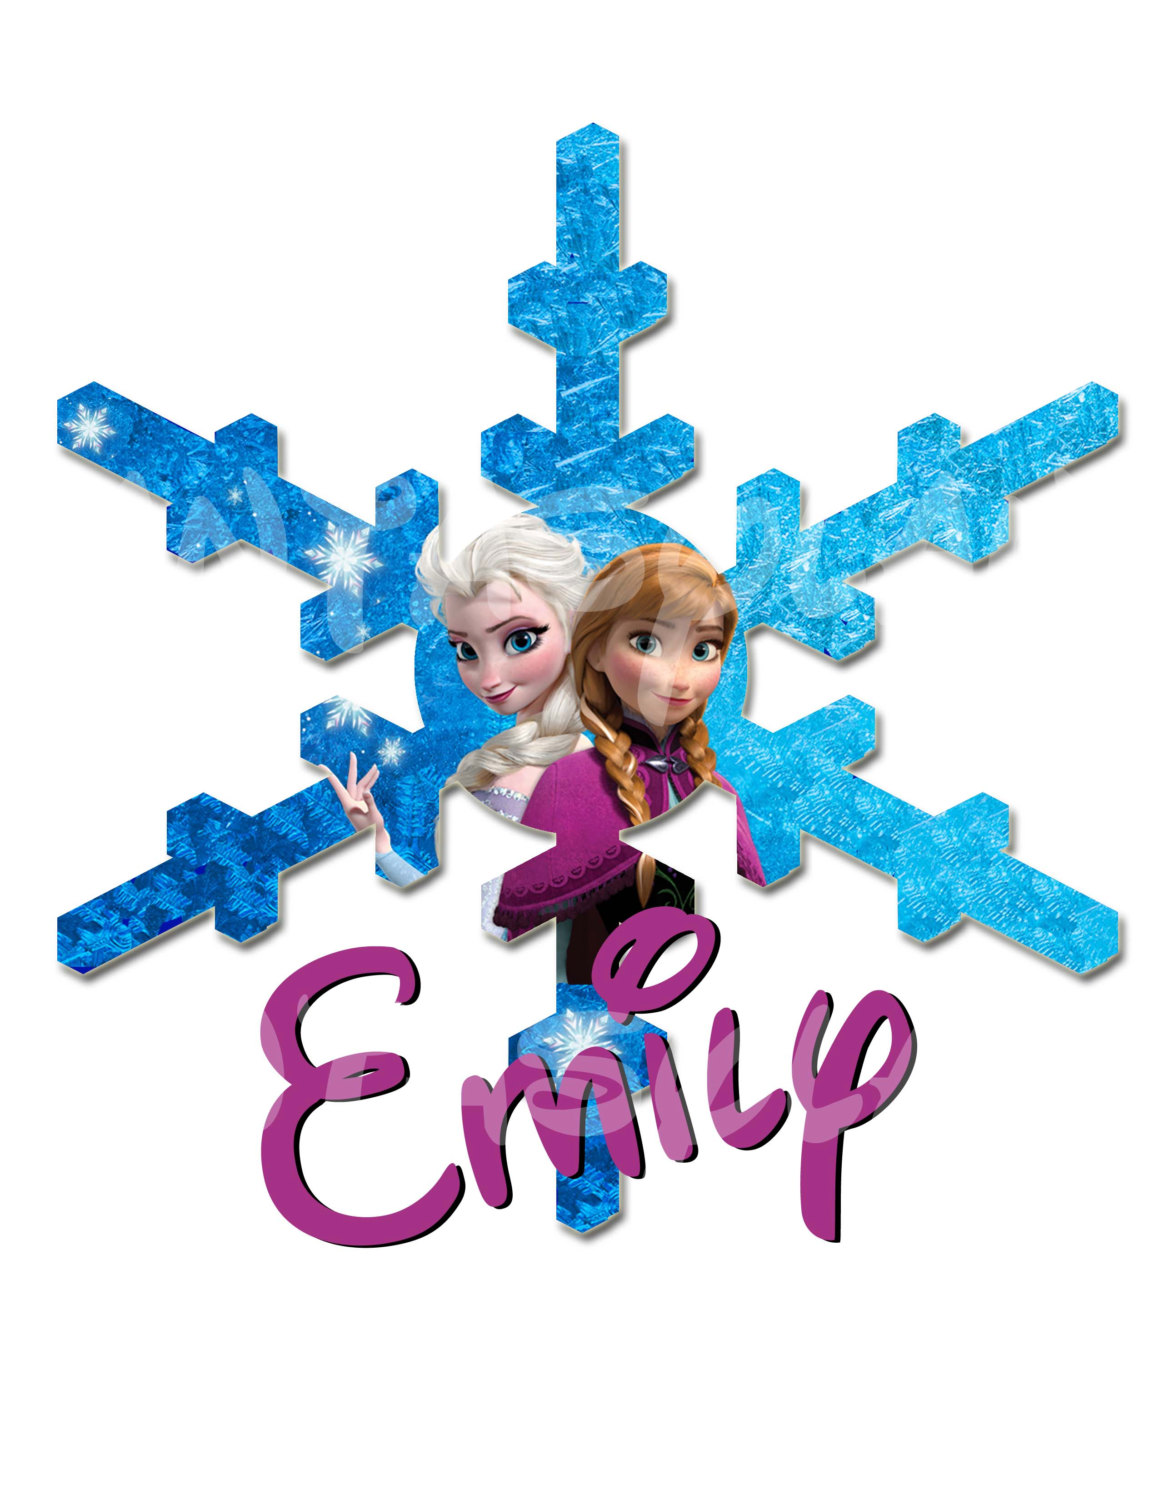 Disney Frozen Elsa Clip Art Disney S Frozen Elsa Birthday